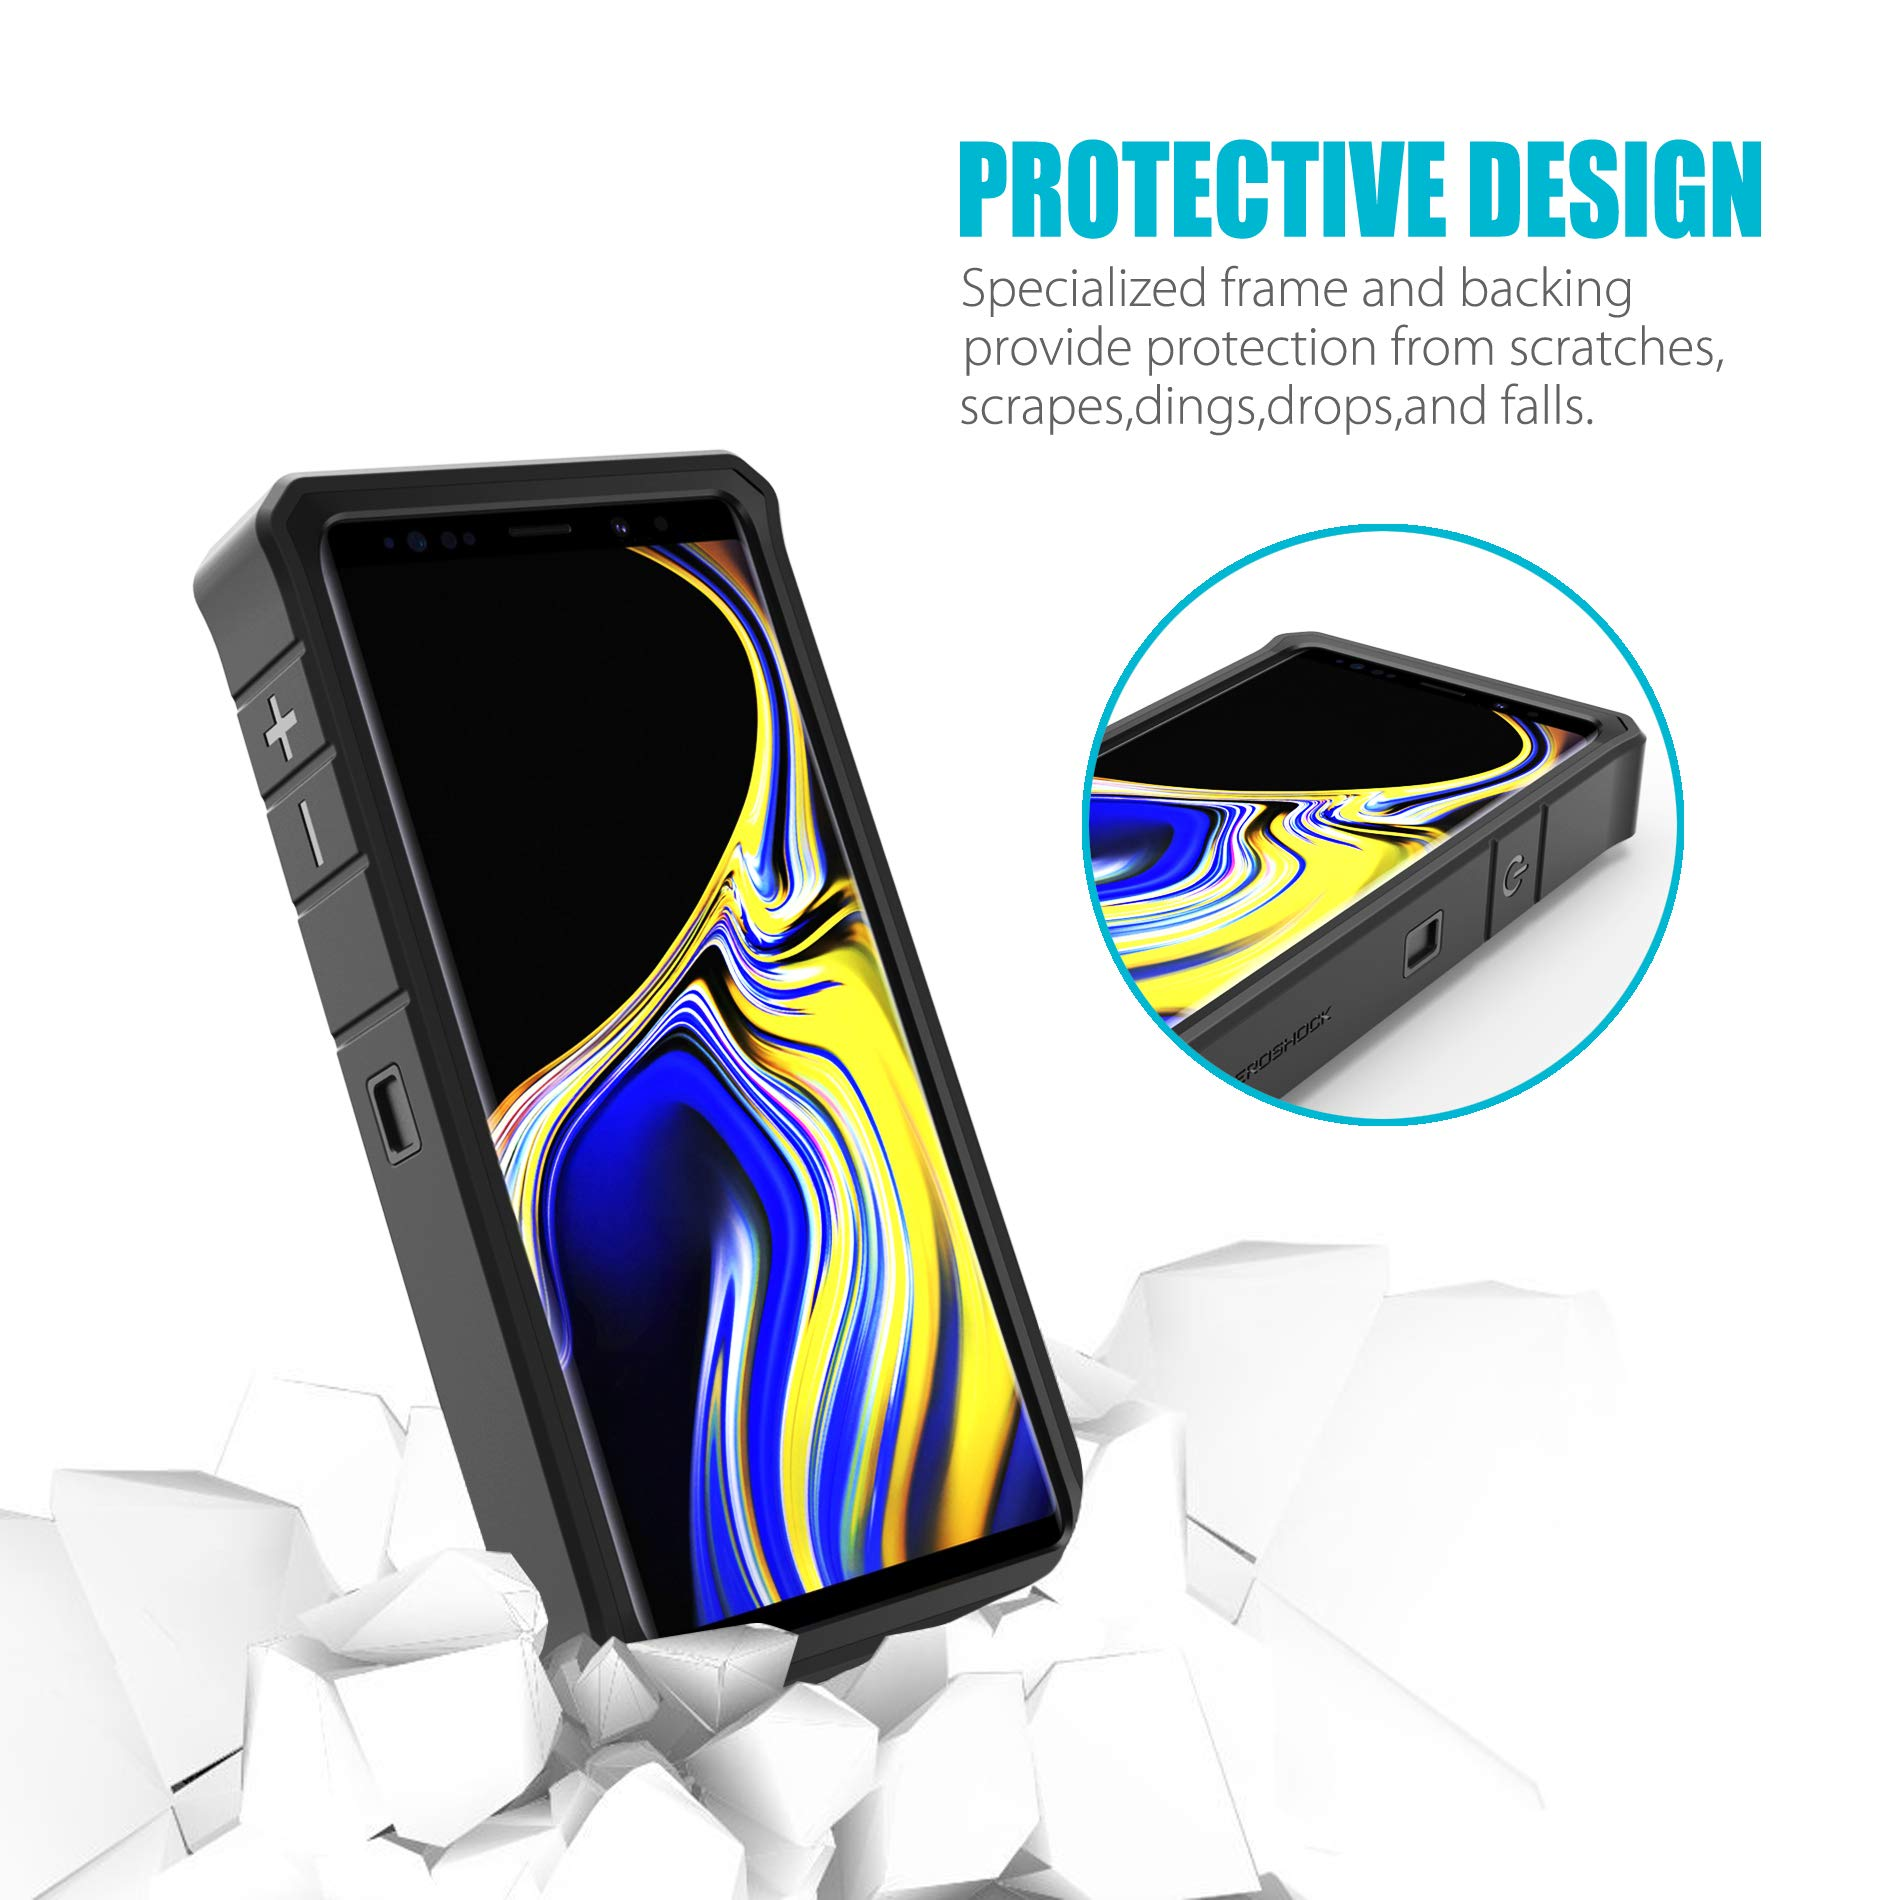 Galaxy Note 9 Battery Charging Case, ZeroLemon ZeroShock 10000mAh Extended Rechargeable Battery Rugged Case with Full Edge Protection for Samsung Galaxy Note 9 - Black by ZEROLEMON (Image #4)